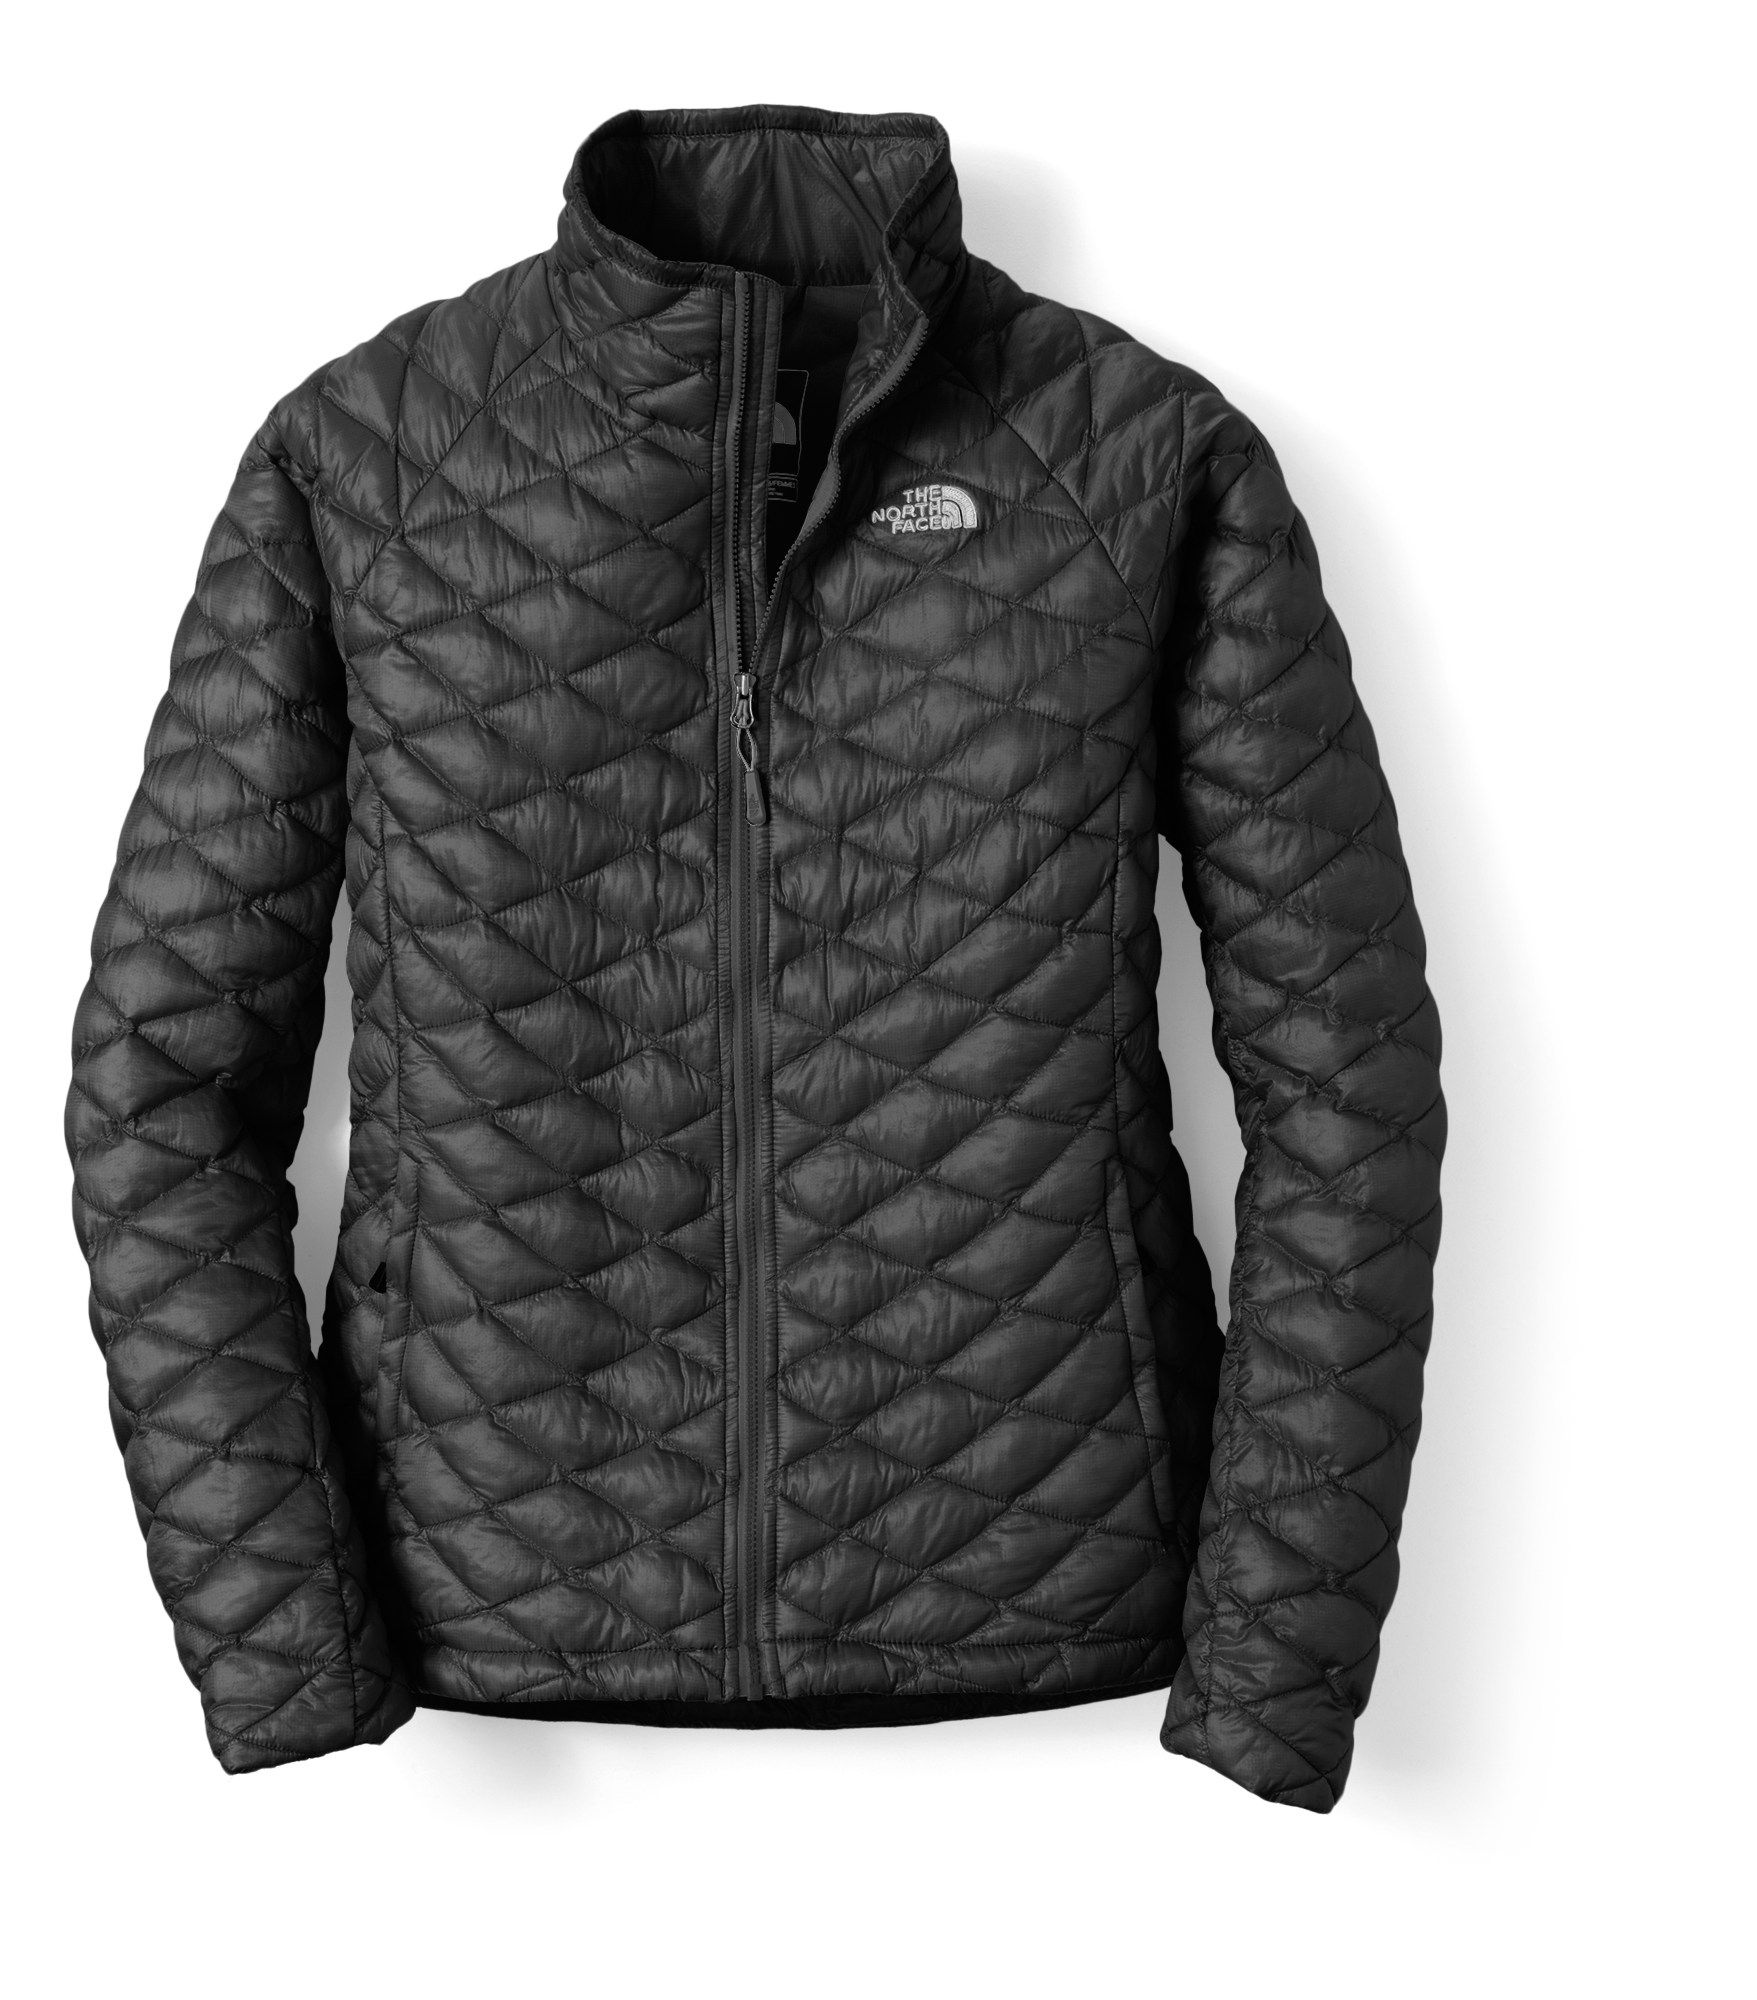 898547989 The North Face ThermoBall Full-Zip Jacket - Women's - Discontinued ...